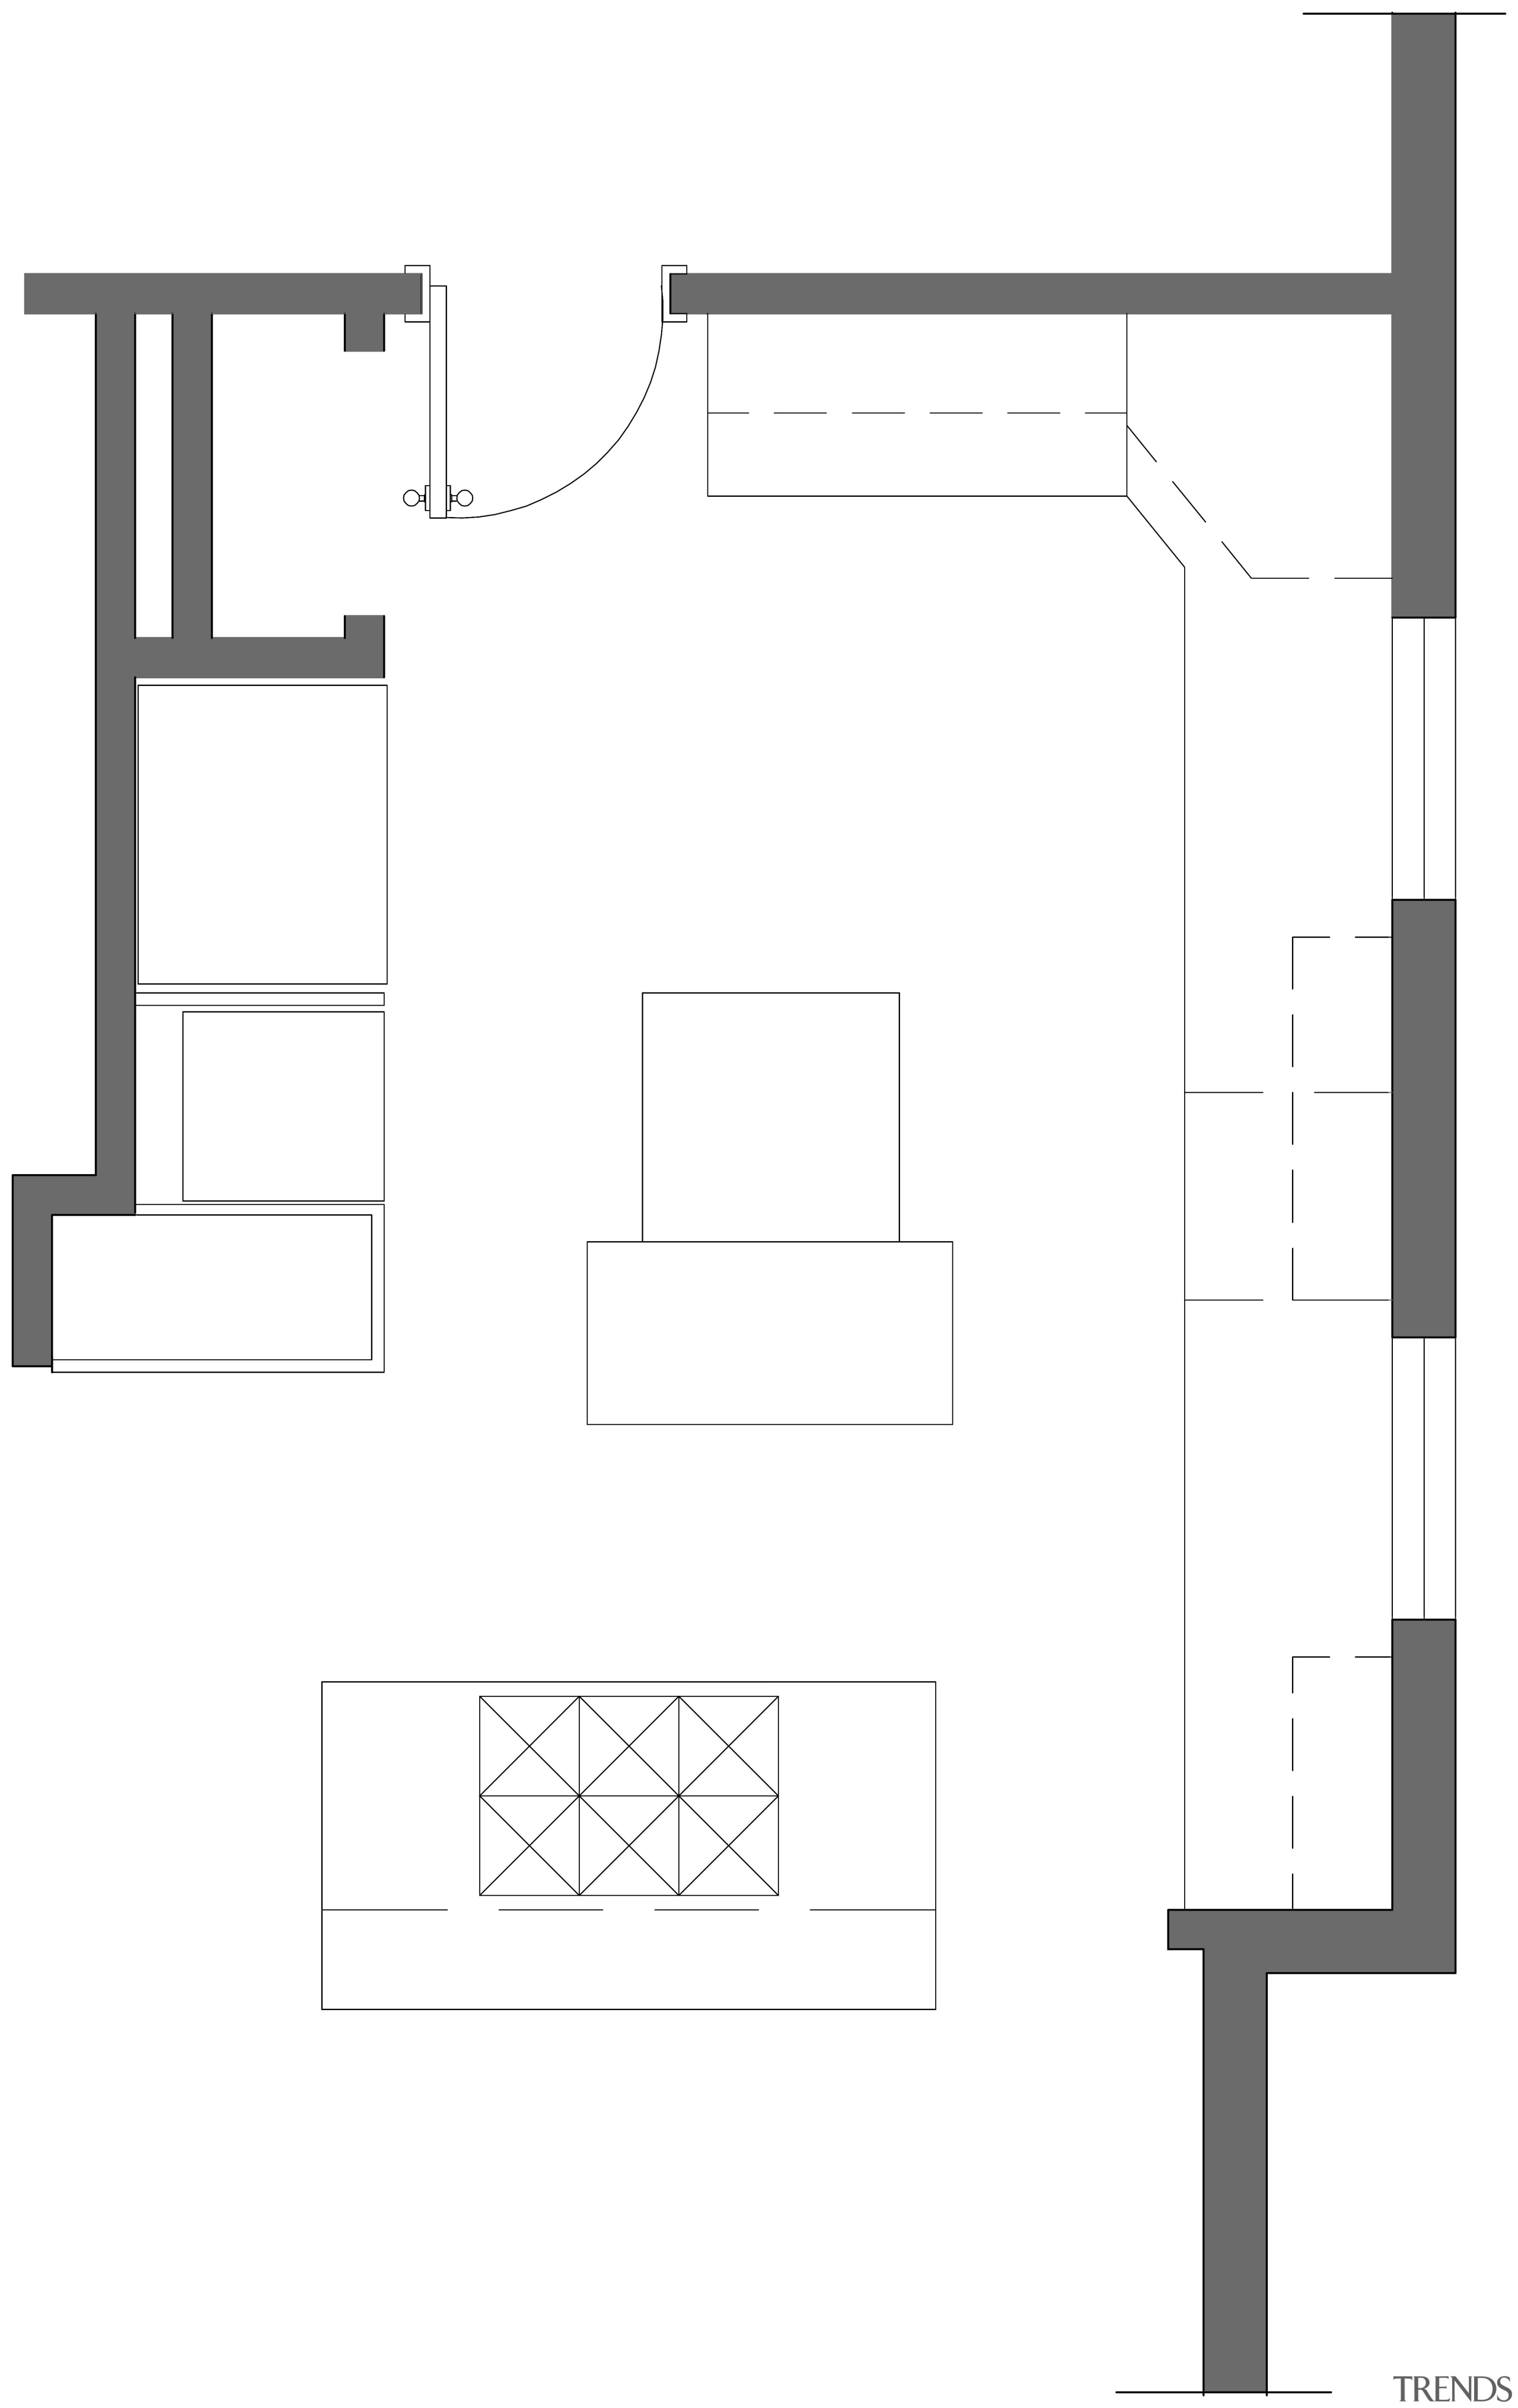 Blueprint of Gamble's remodeled kitchen. - Blueprint of angle, architecture, area, black and white, design, diagram, drawing, elevation, floor plan, font, house, line, plan, product, product design, square, structure, white, white